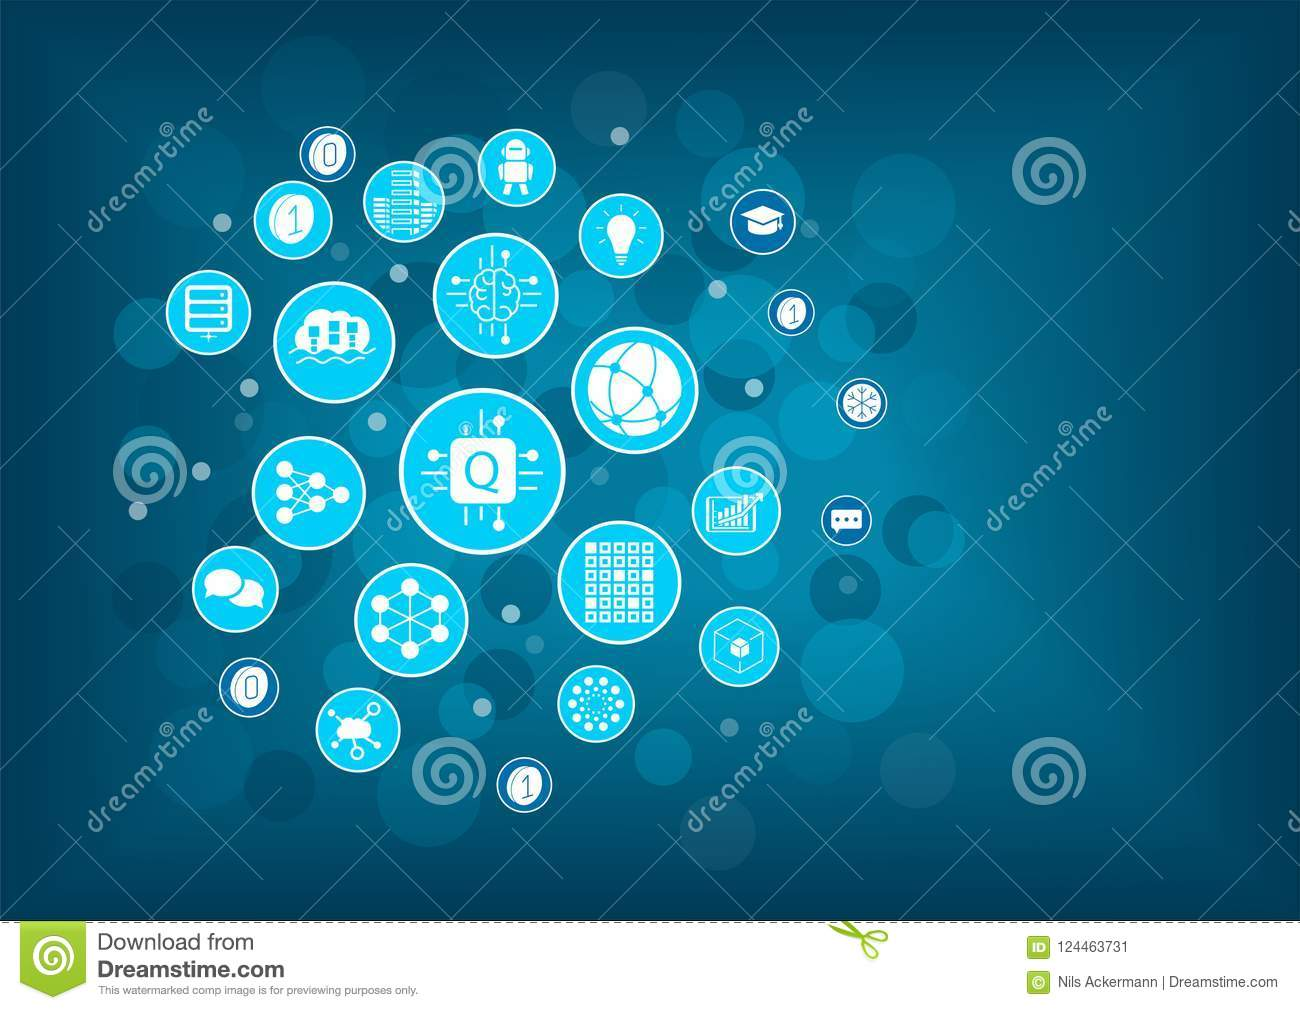 Quantum computing vector illustration as example for digital innovation. Icons arranged as light bulb